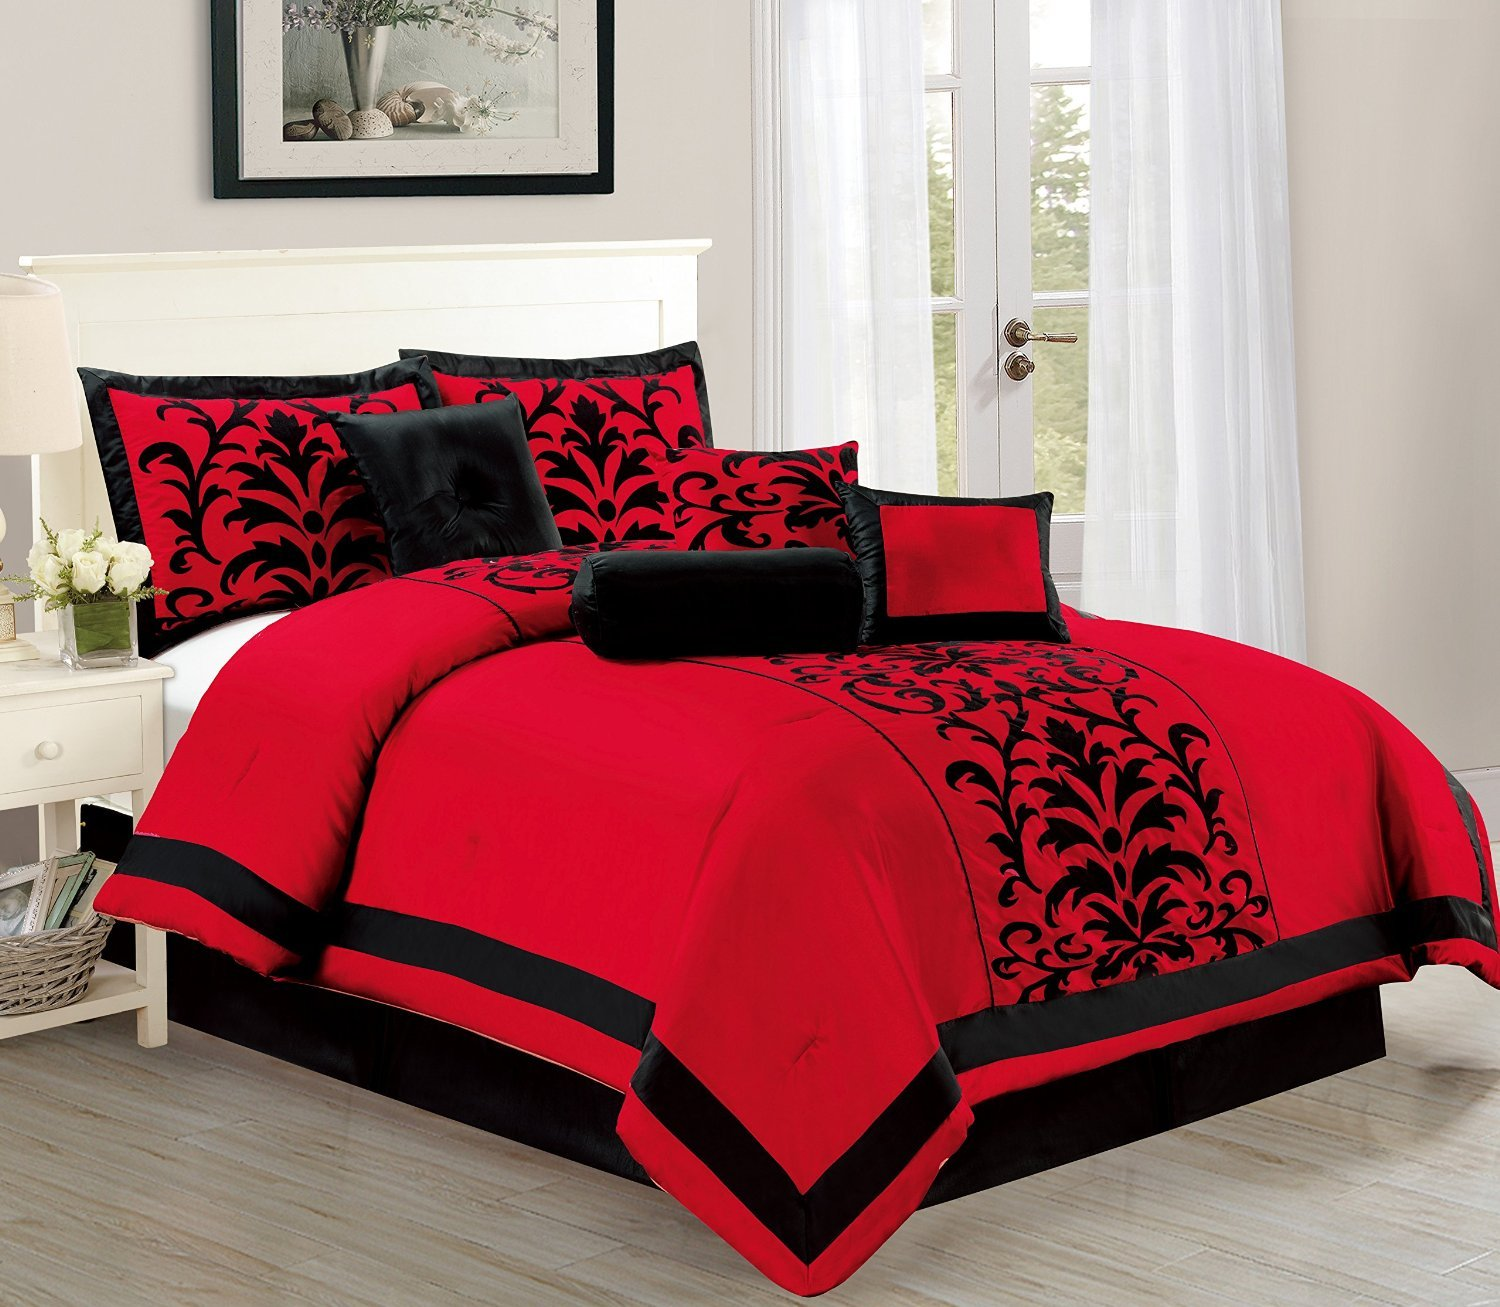 King size bed for sale gallery of king size bedroom sets for Cheap full bedroom sets for sale